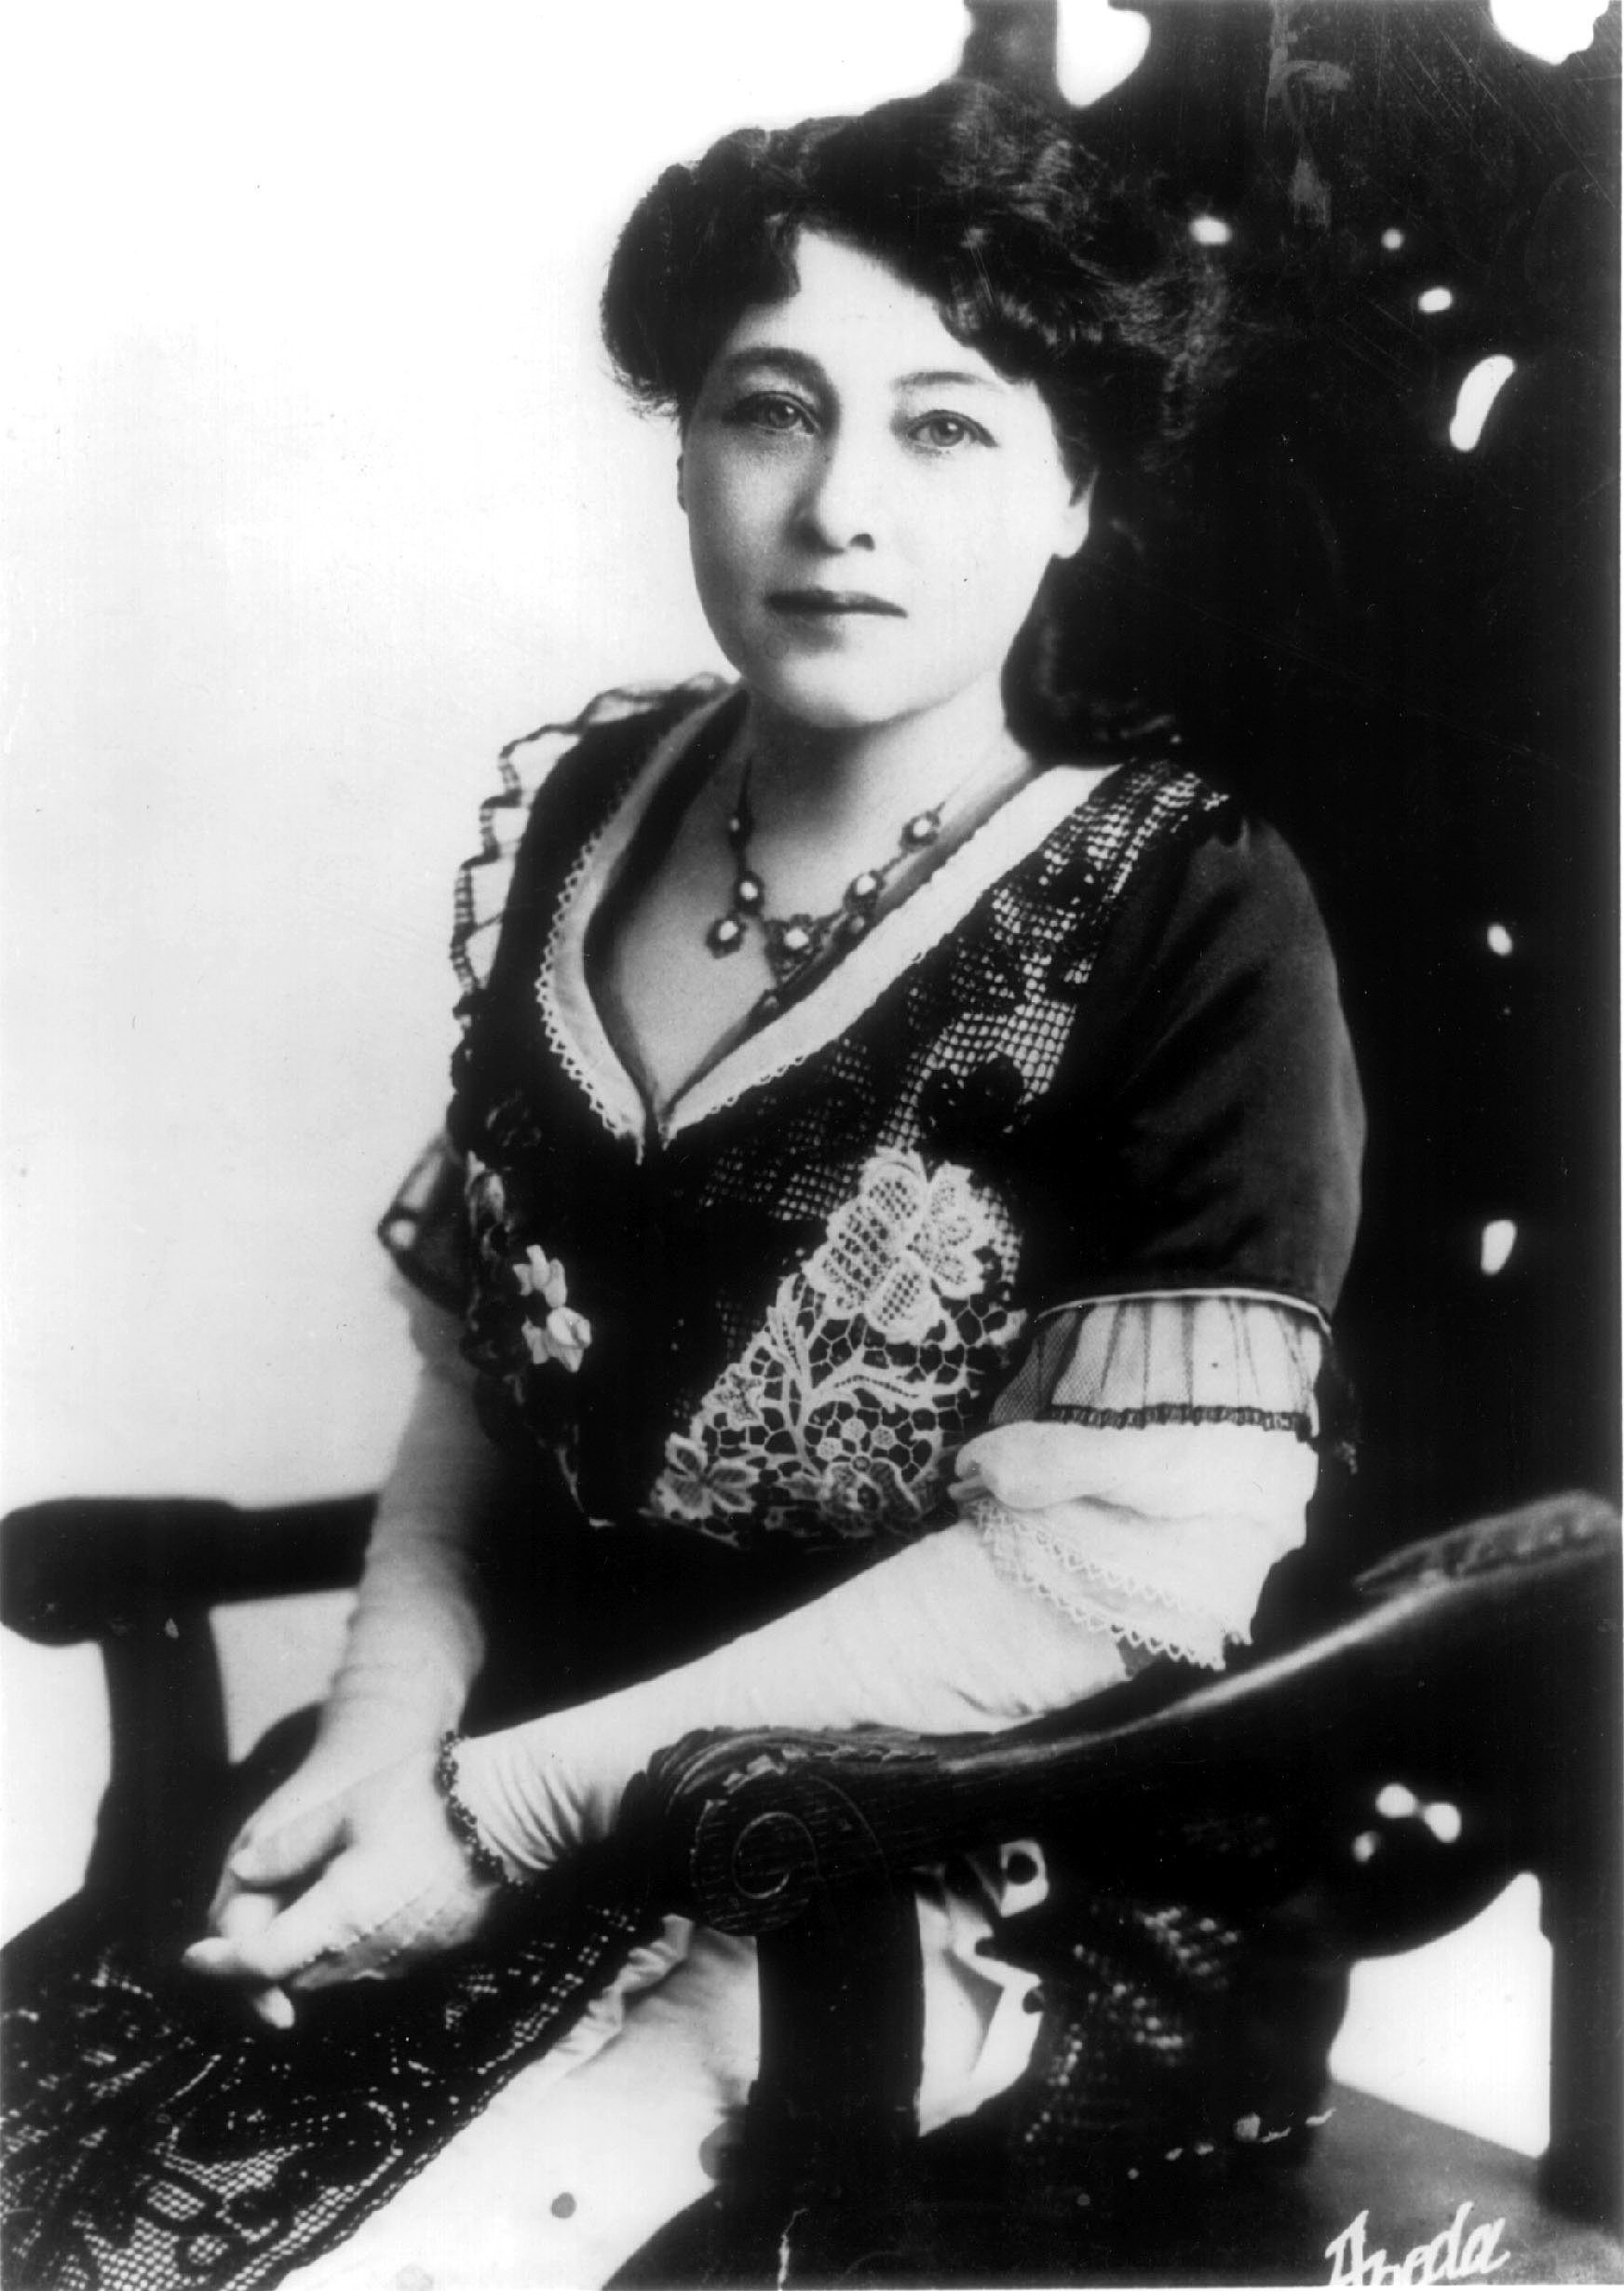 A black and white image of a woman sitting in a chair